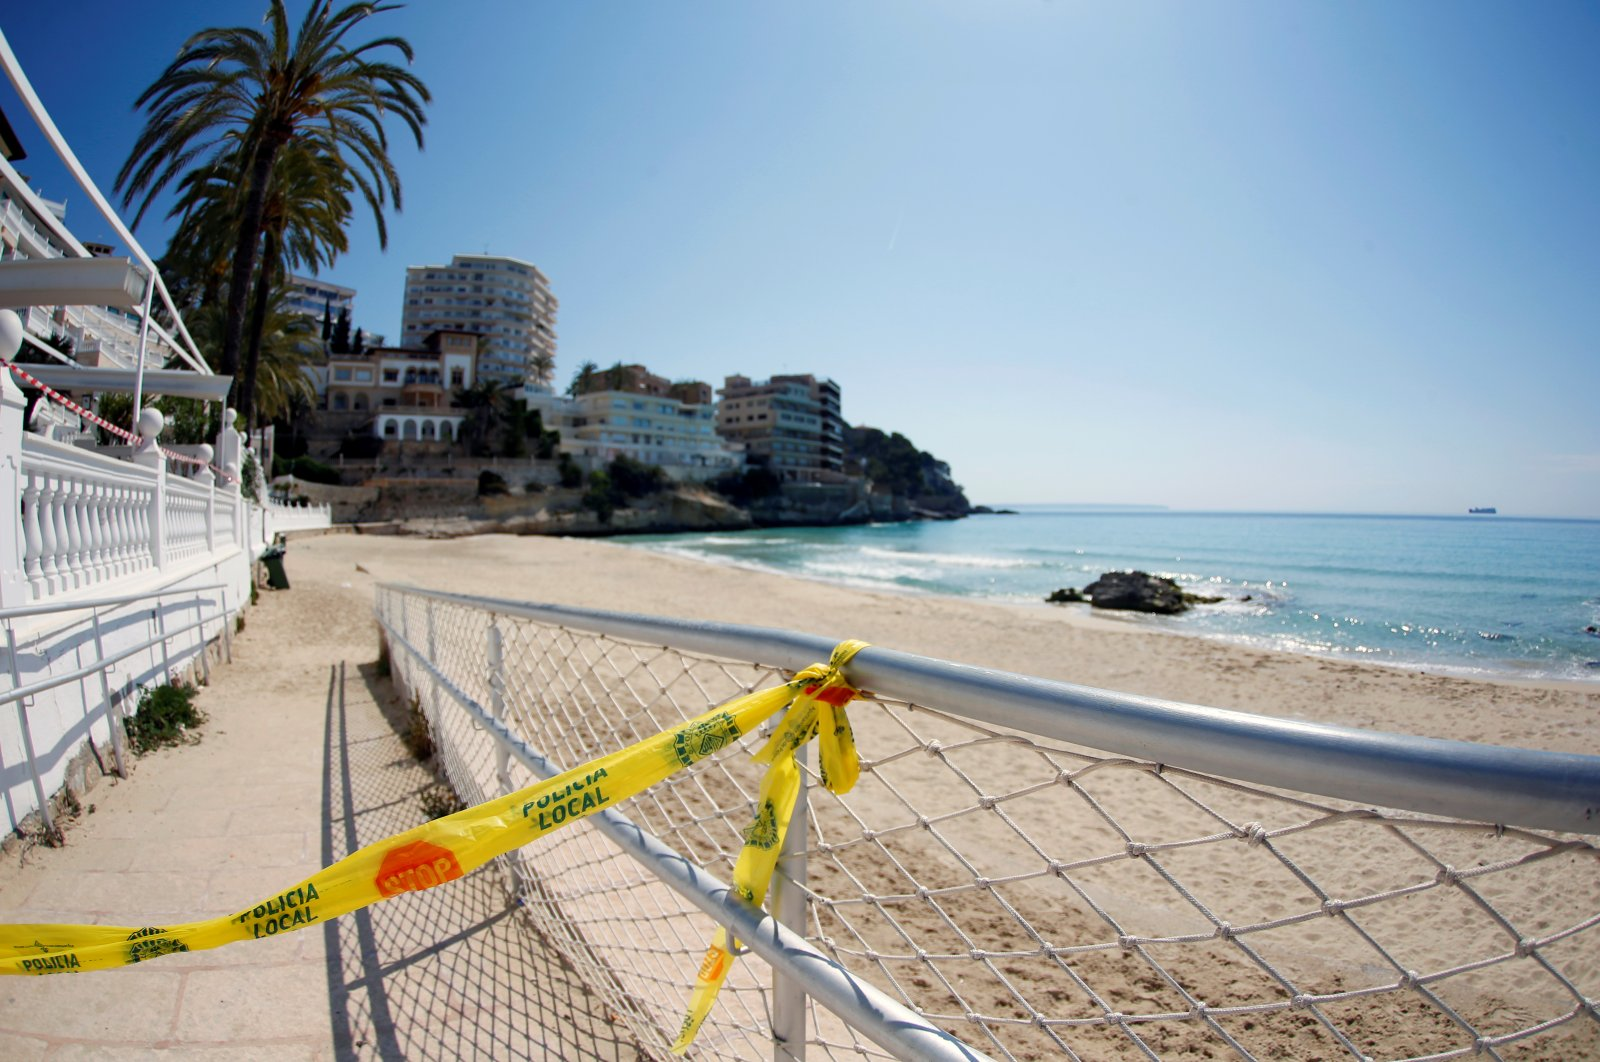 Police tape restricts access to a beach in Cala Major during the COVID-19 outbreak in Mallorca, Spain, April 9, 2020. (Reuters Photo)